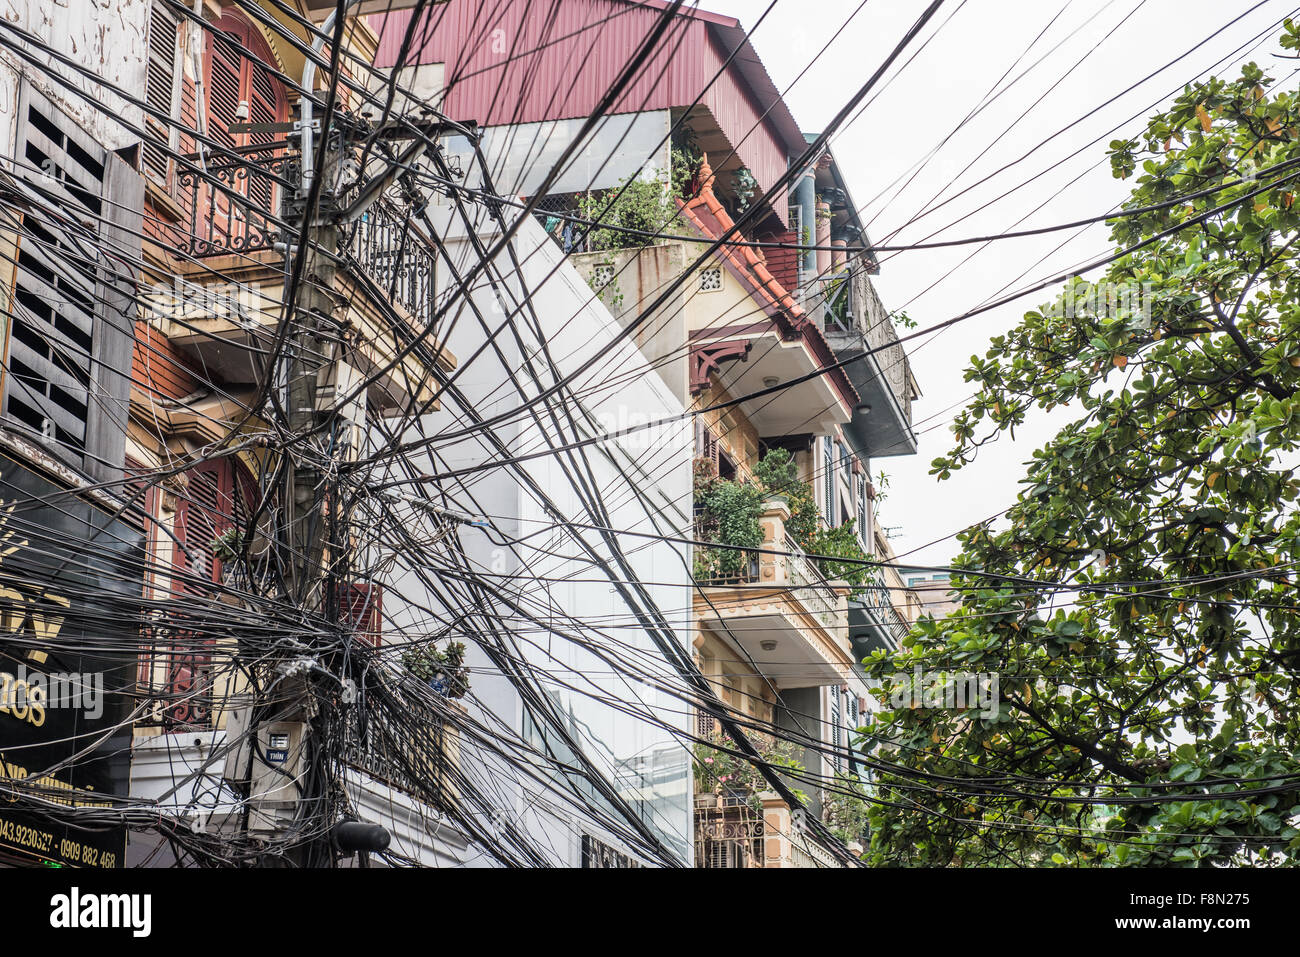 electric wiring wires messy mess stock photos electric wiring rh alamy com